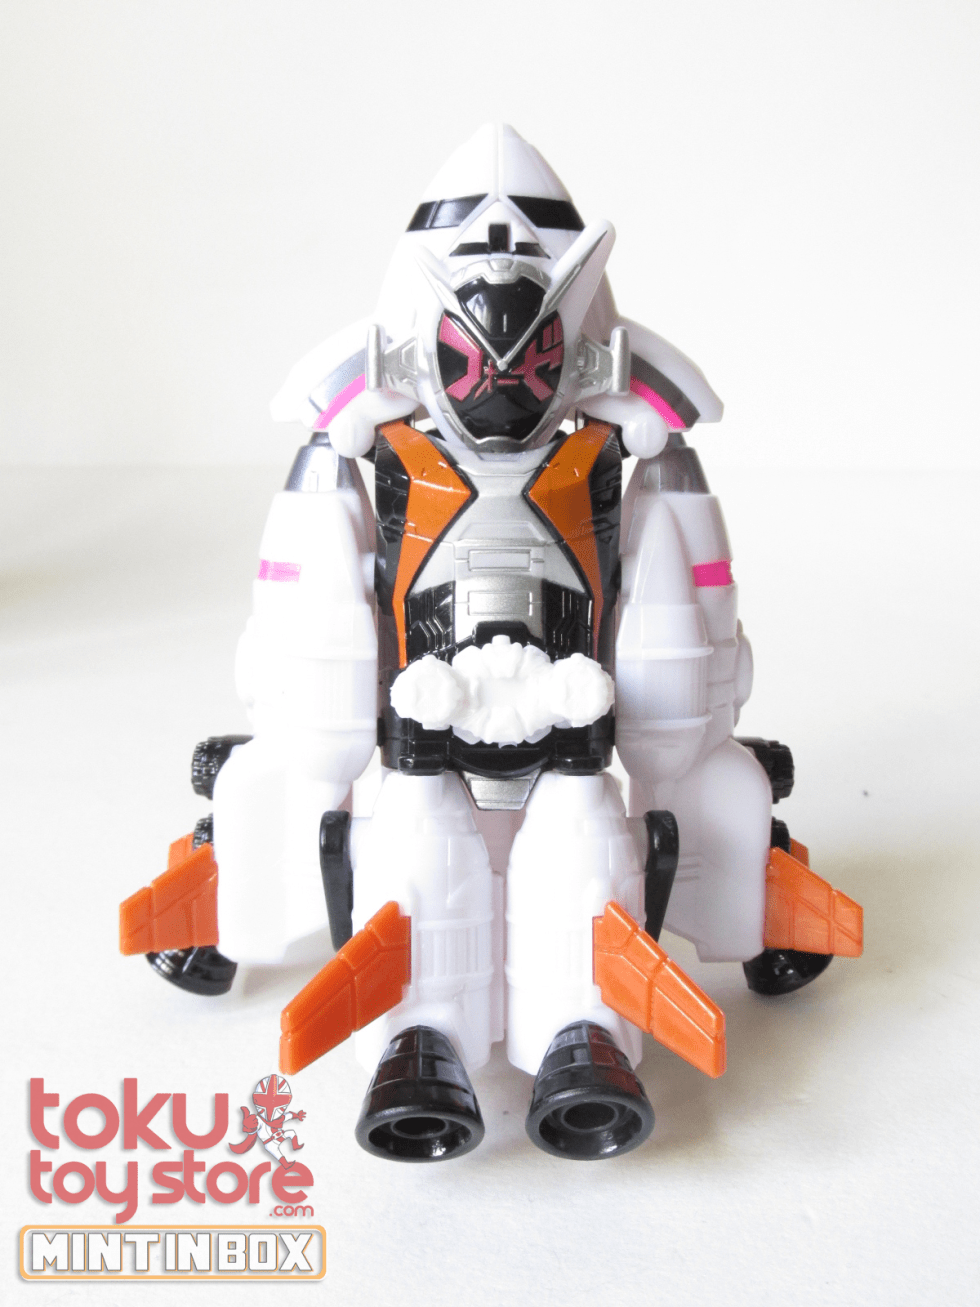 RKF_Fourze_Toku Toy Store (2)